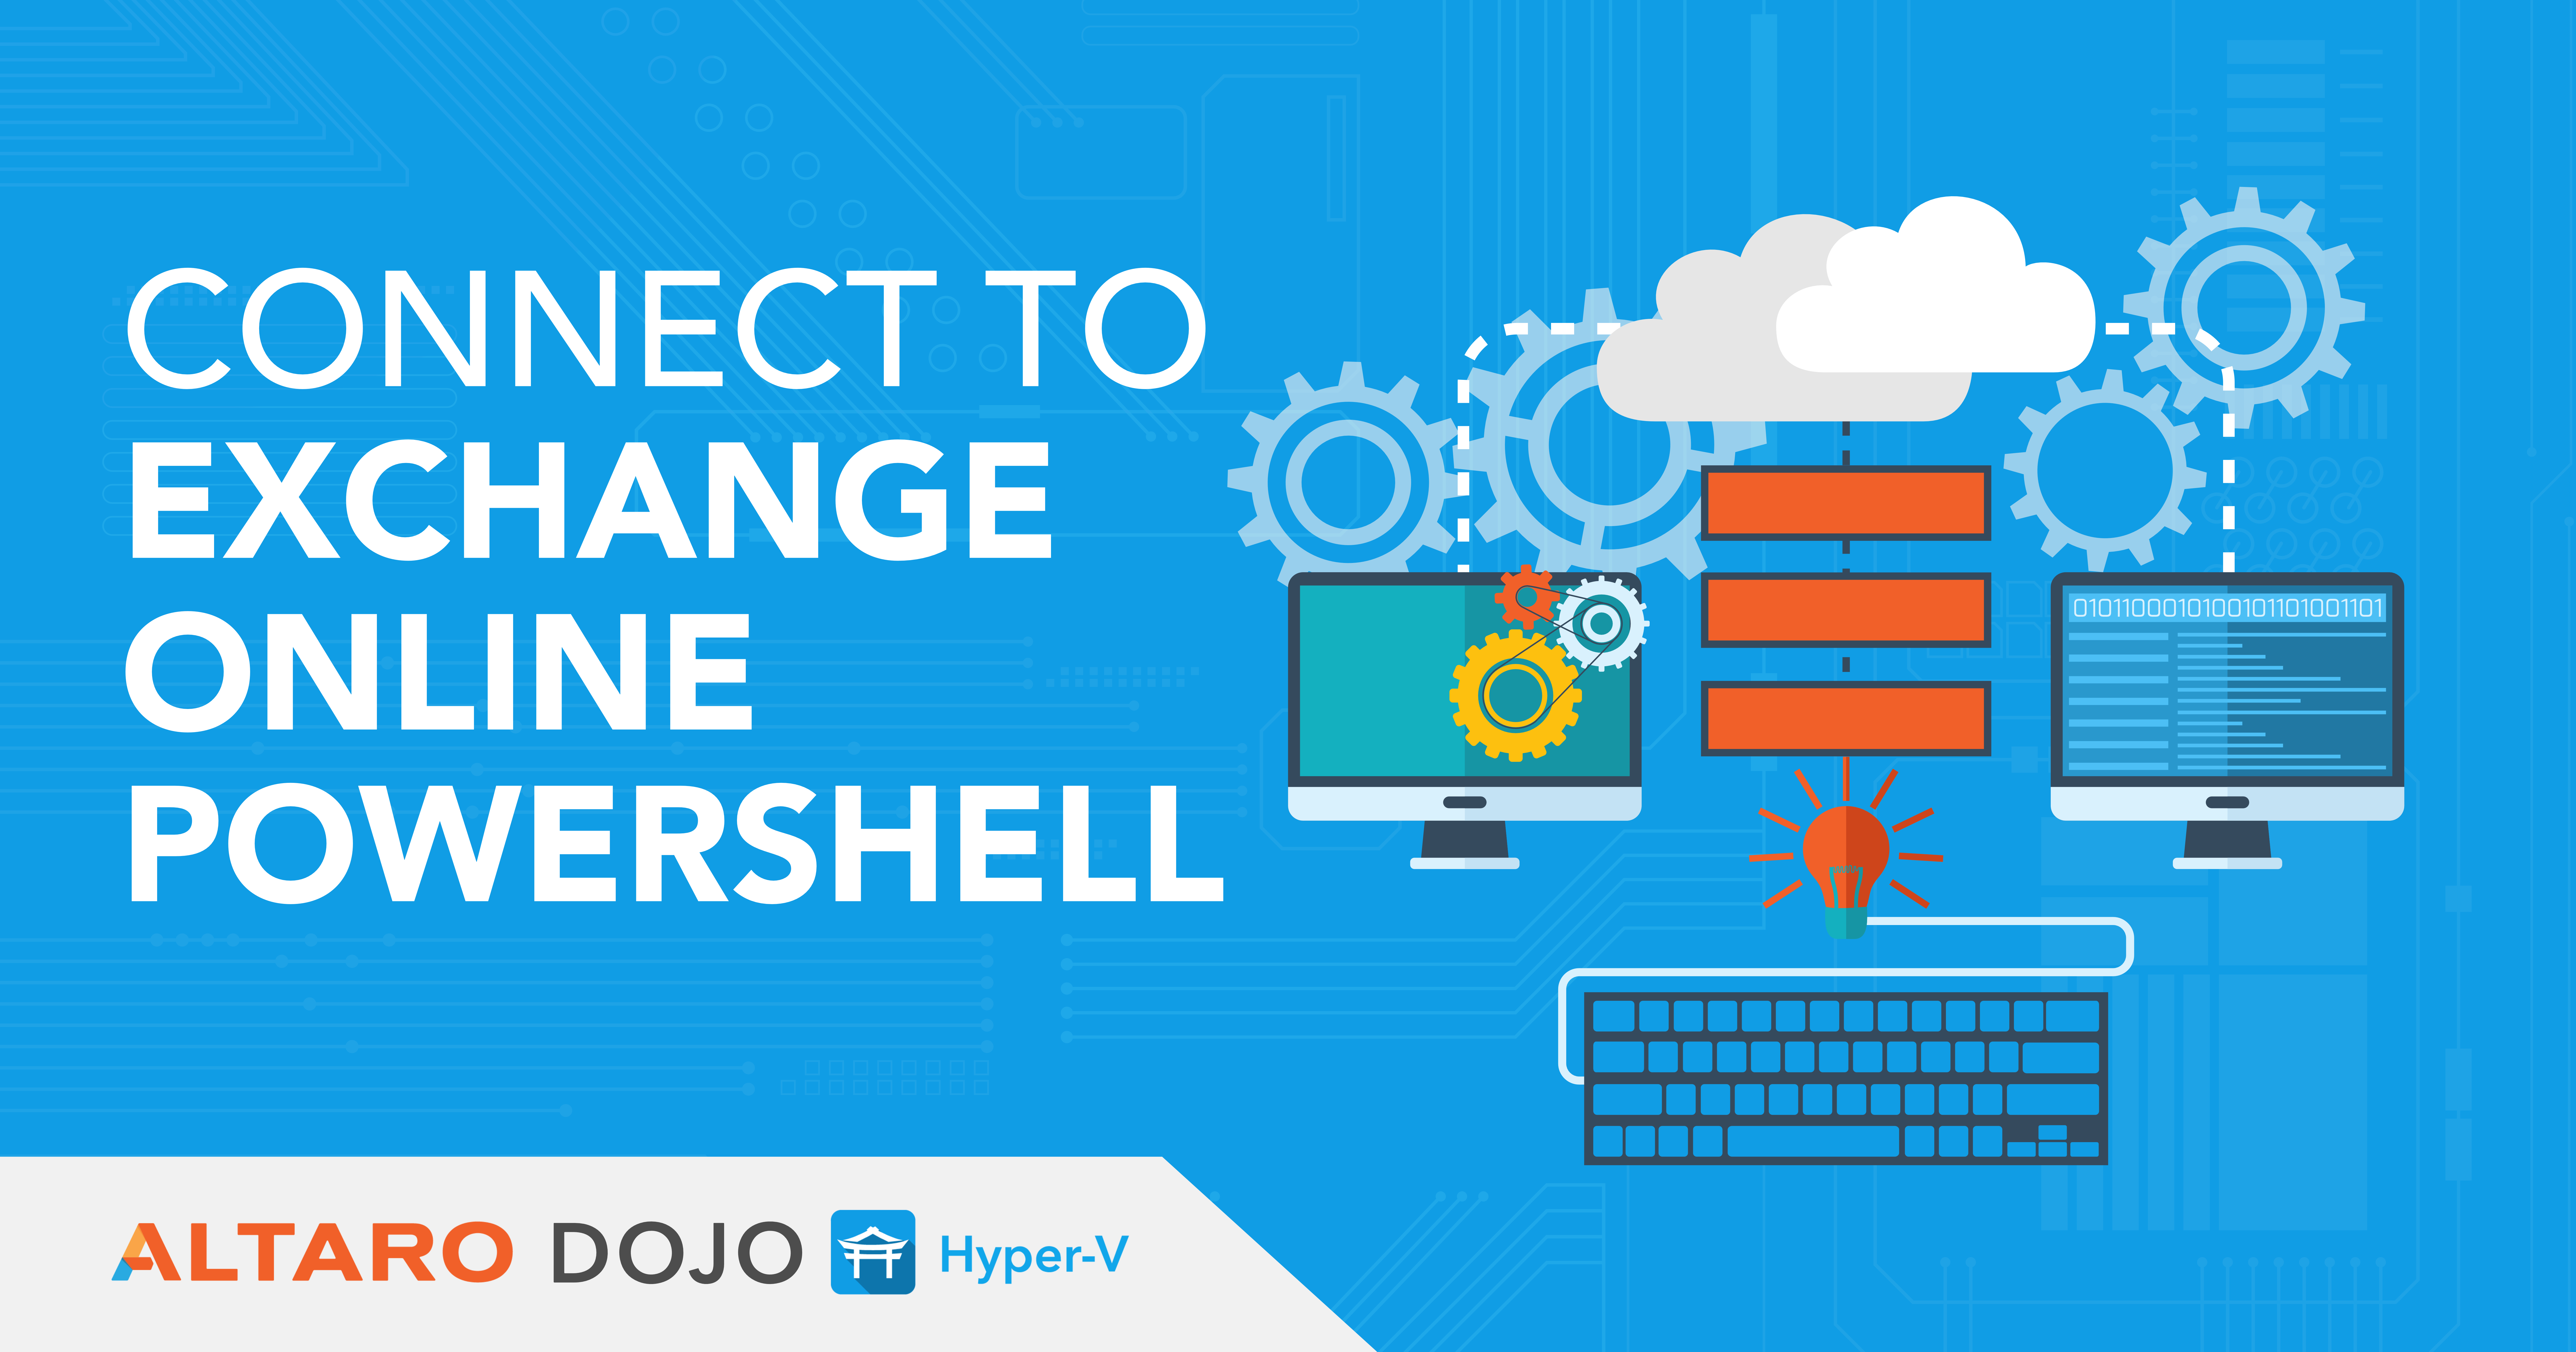 How to Quickly Connect to Exchange Online Powershell